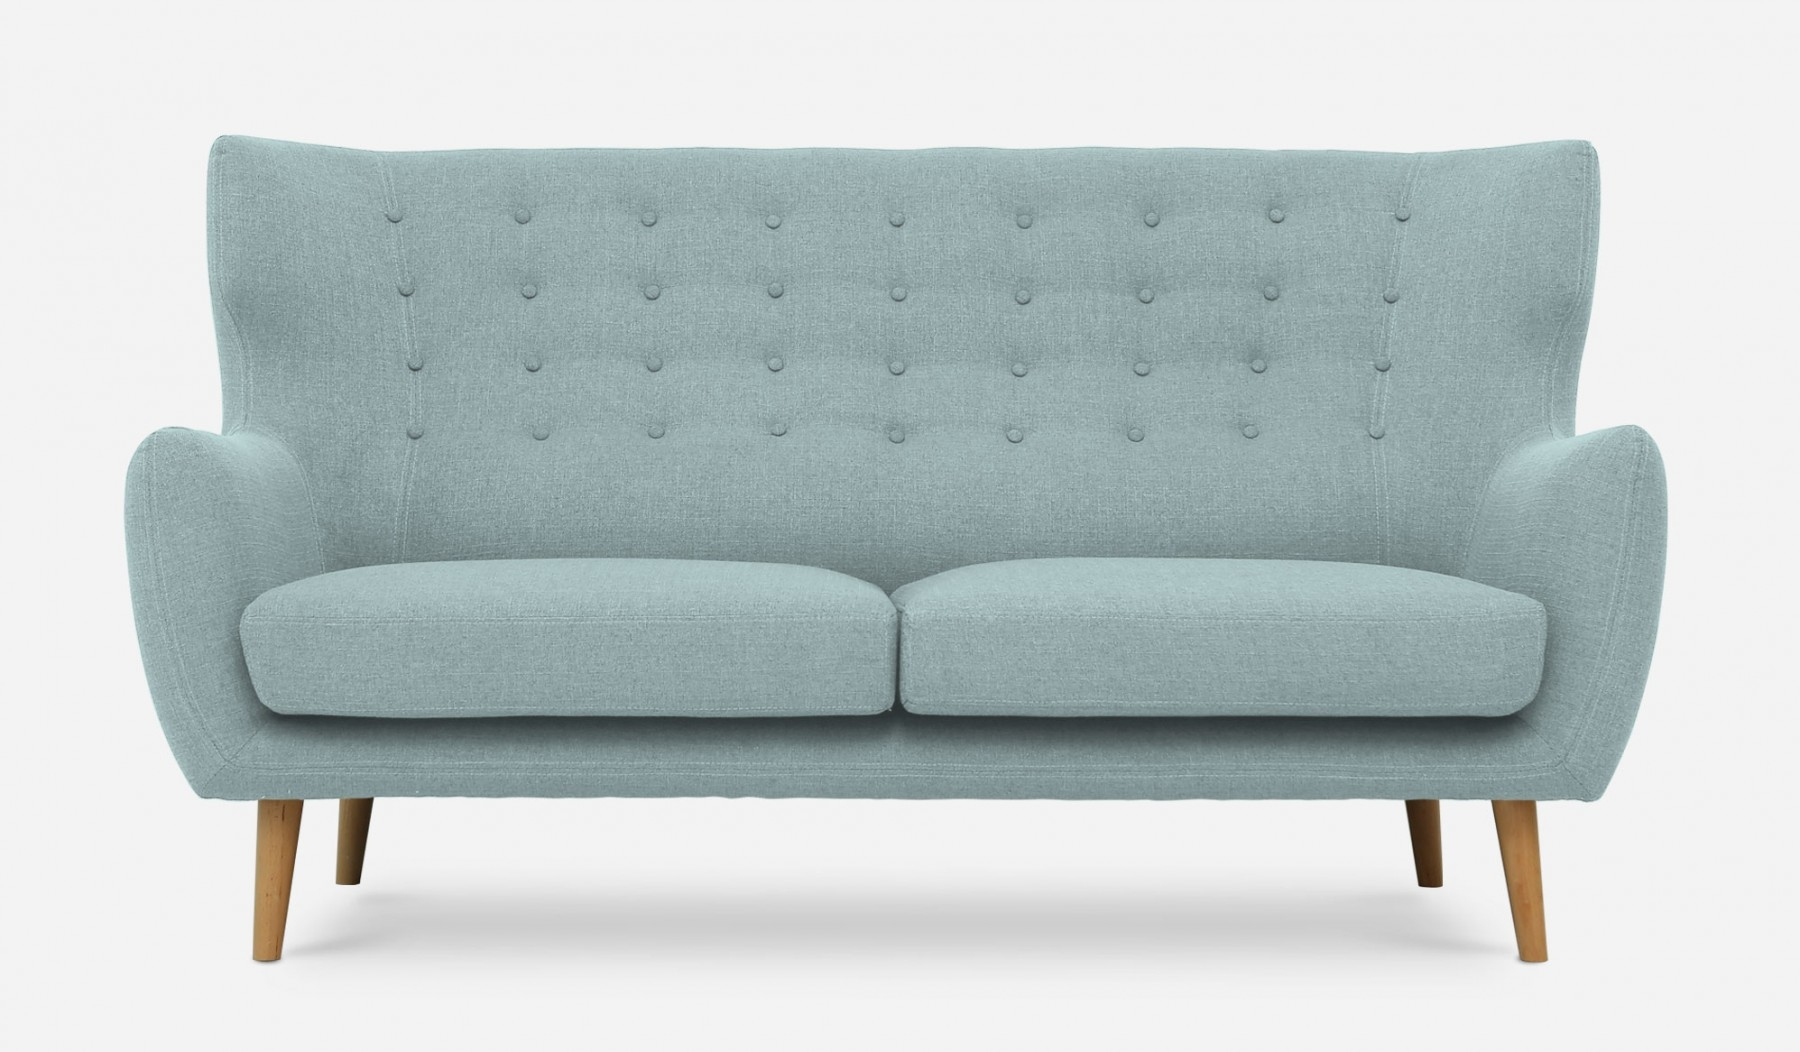 Beck Sofa Customized For Customized Sofas (#2 of 12)